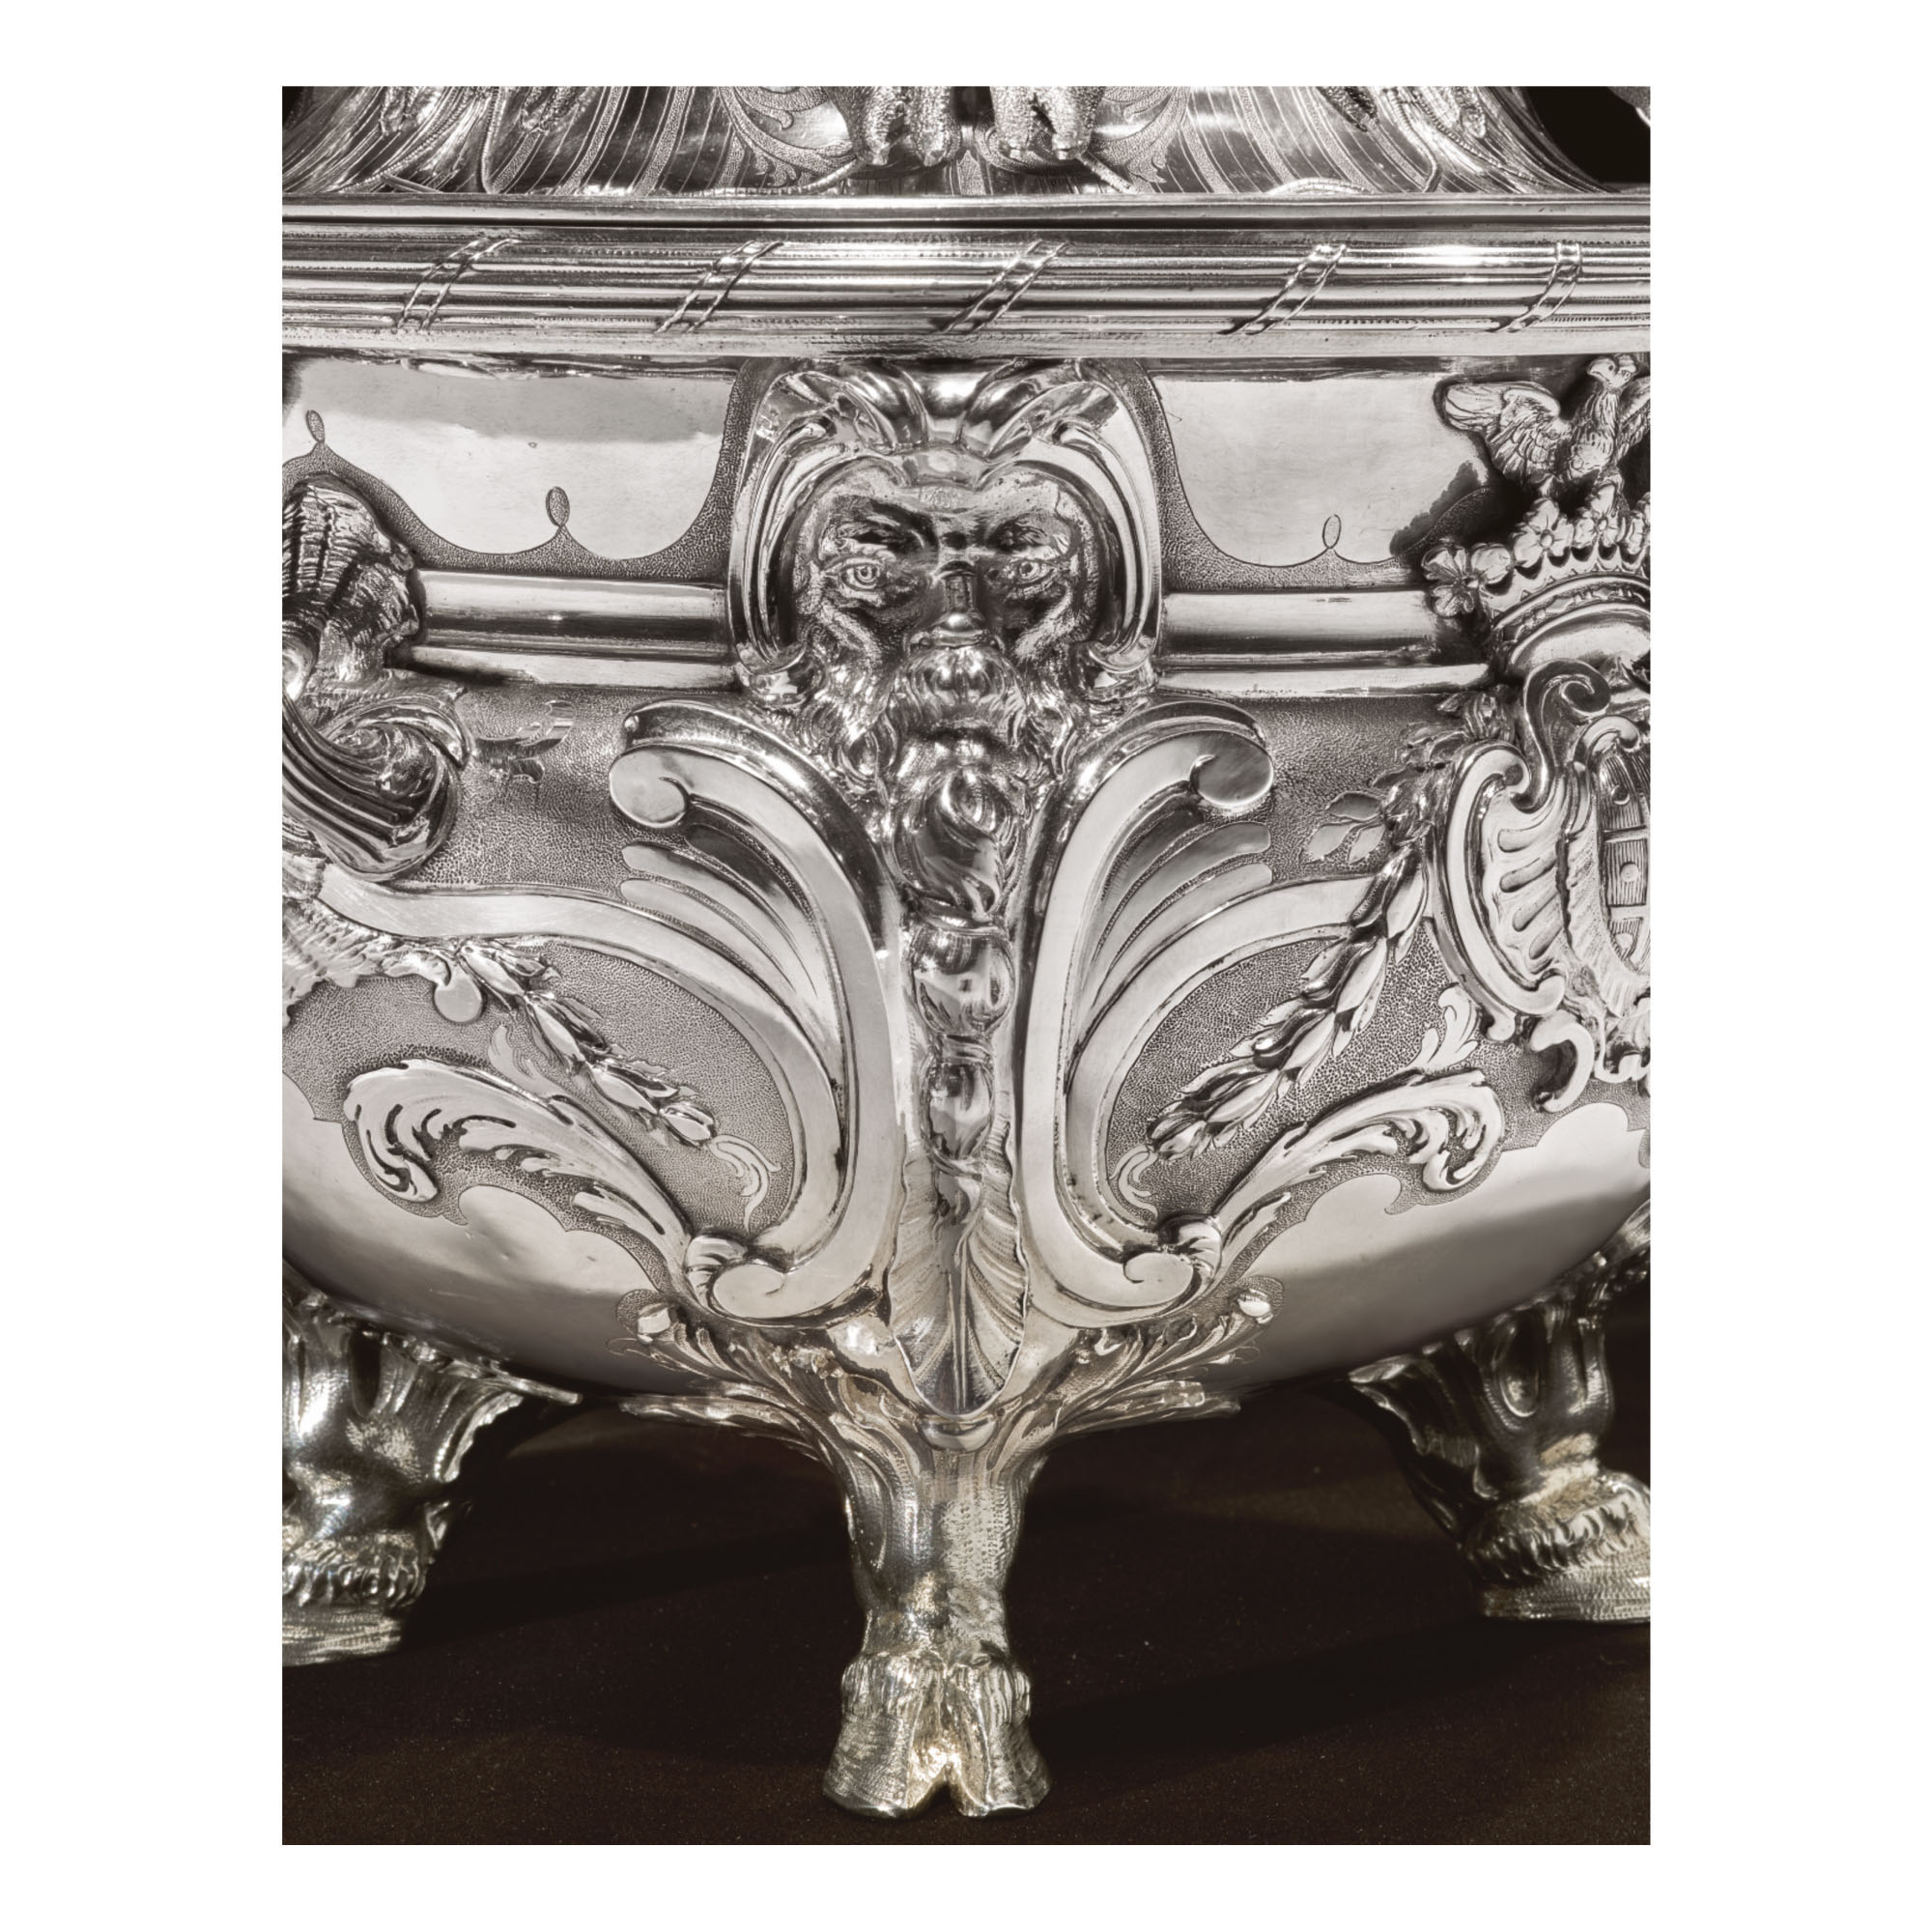 Meuble Made Com Avis a louis xv silver tureen to lead sotheby's october auctions